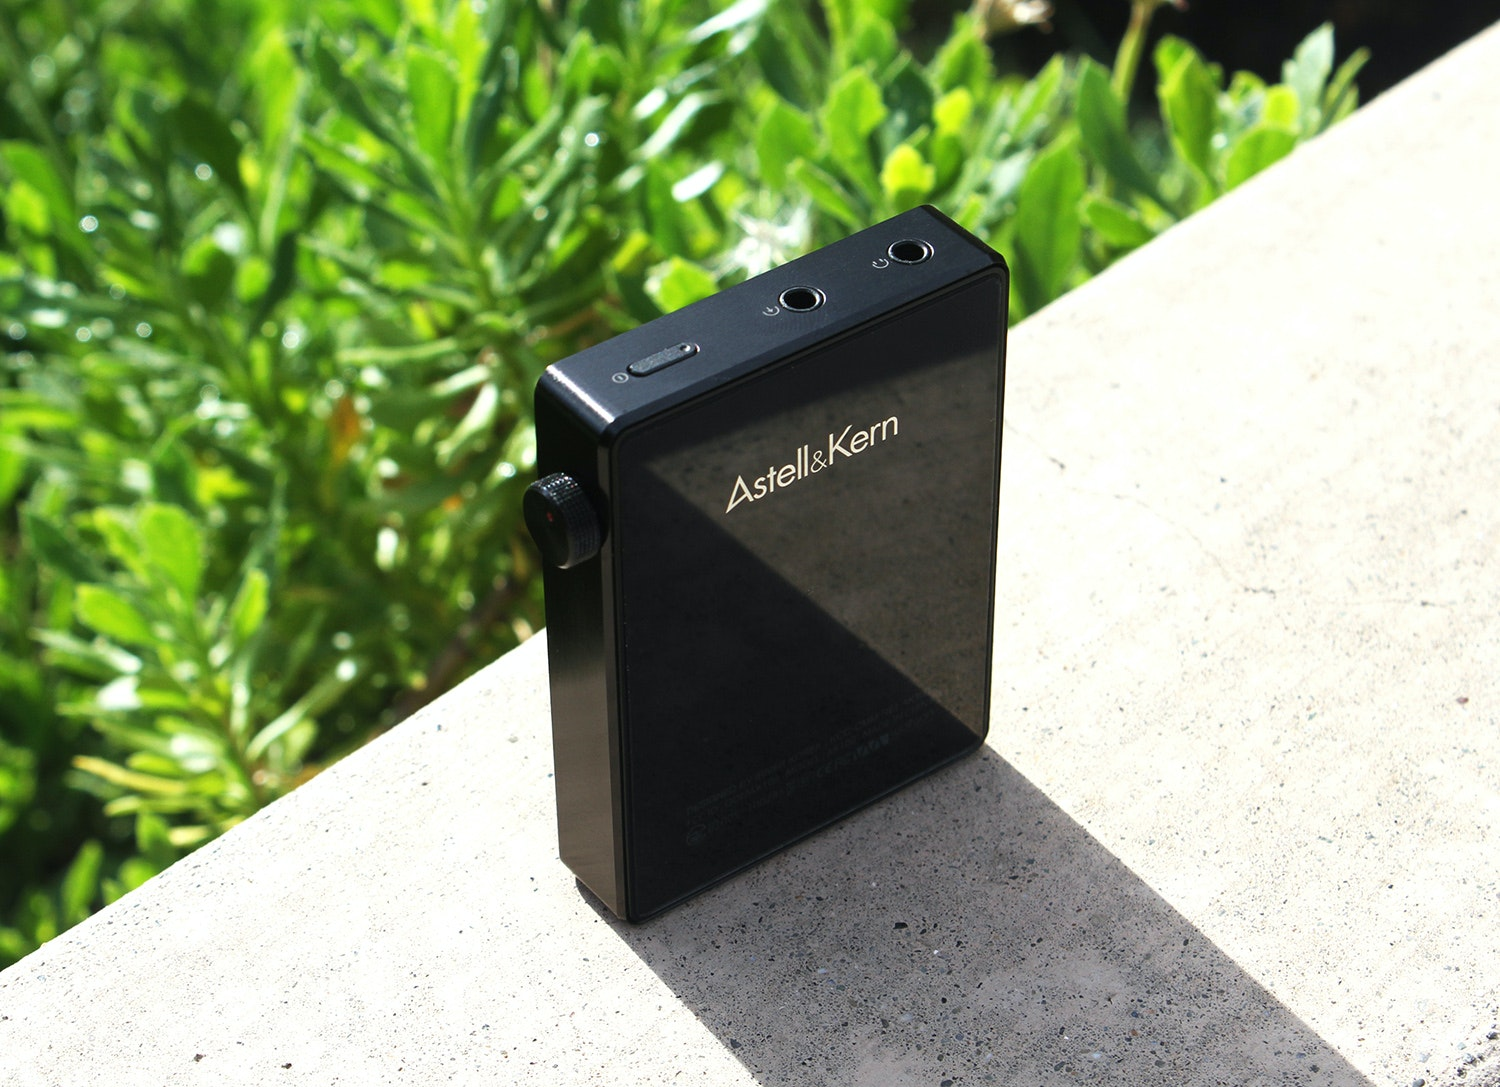 Astell & Kern AK100 Portable Audiophile Player